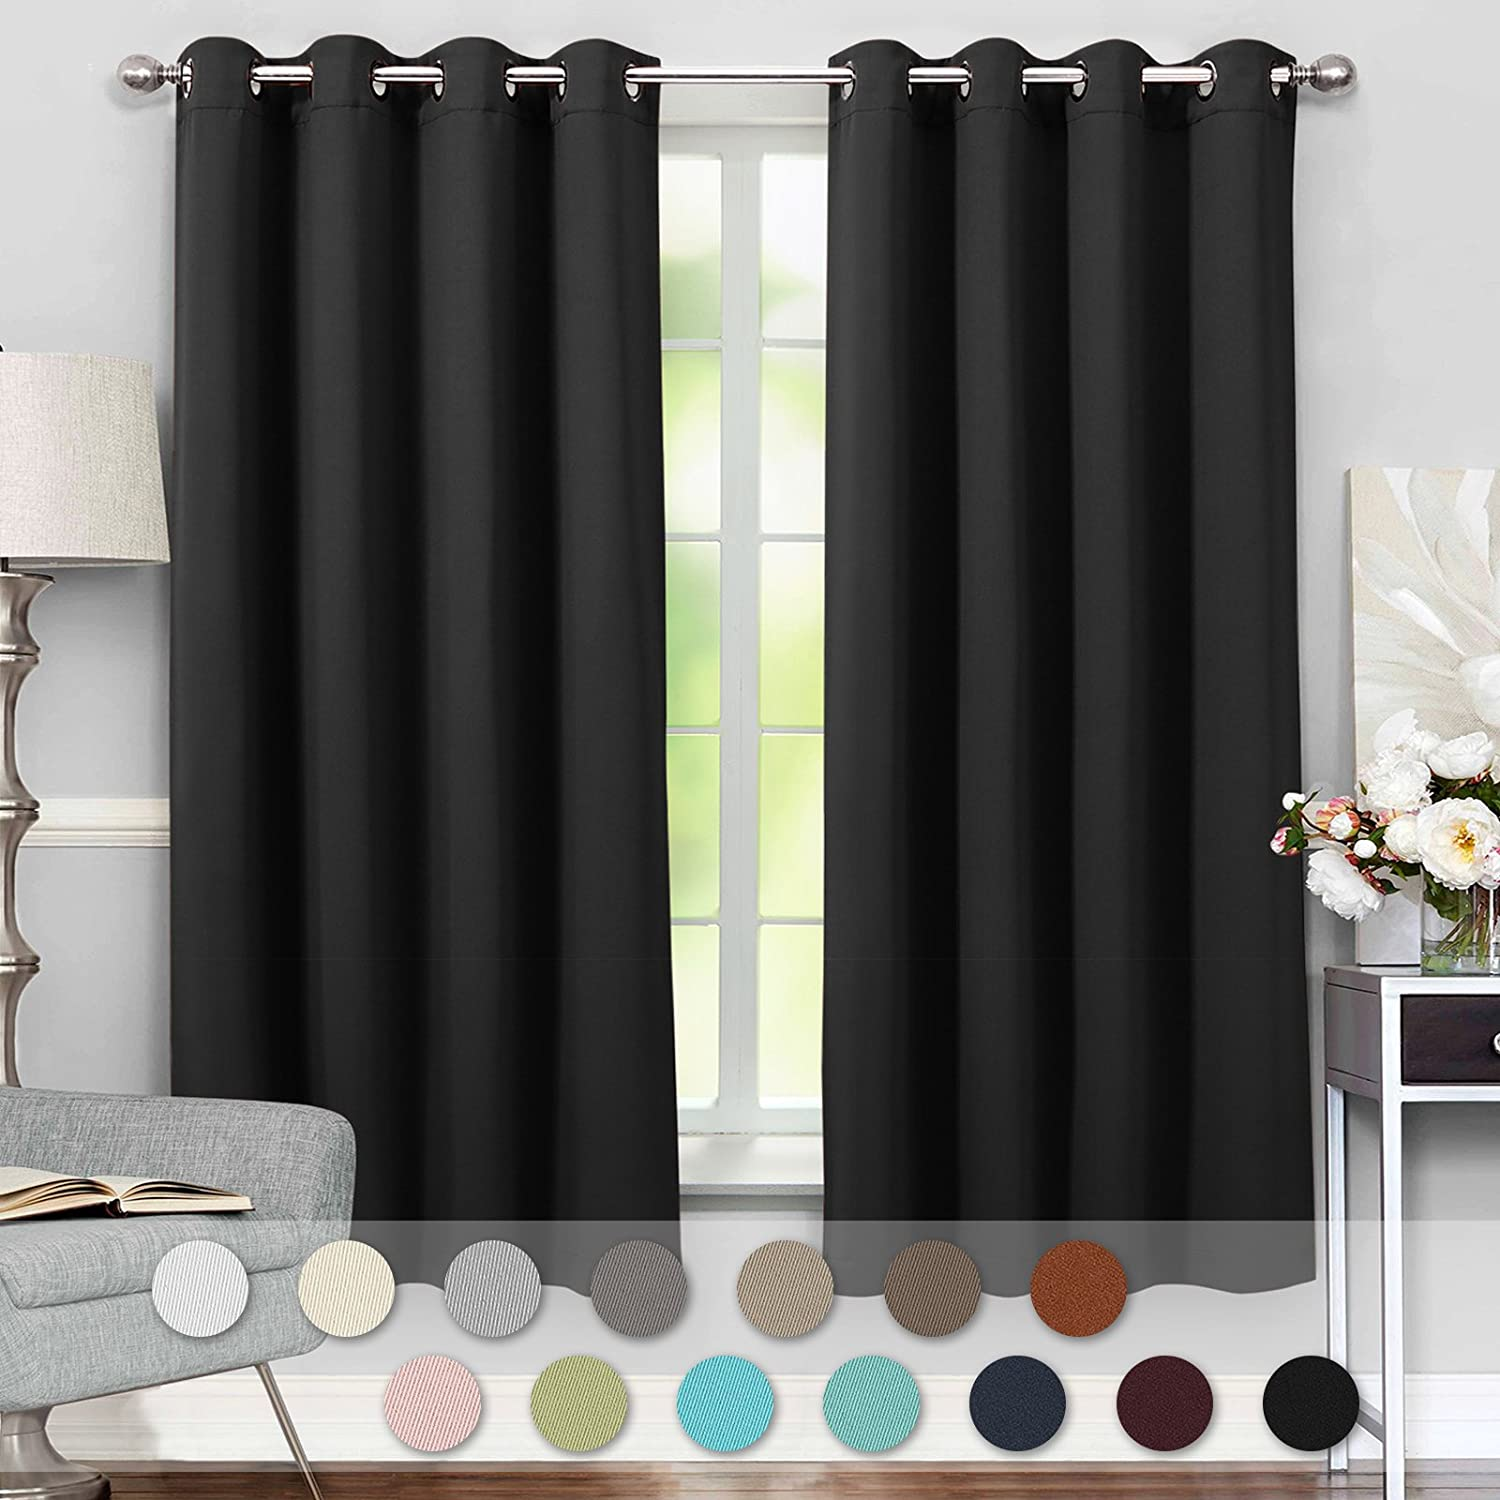 VEEYOO Modern Style Blackout Curtains Grommet Top Thermal Insulated Curtains and Drapes with Tiebacks for Living Room and Bedroom, 2 Panels, 52 W x 63 L, Beige 52 W x 63 L VYCL17001PS63CP1S5-FBA